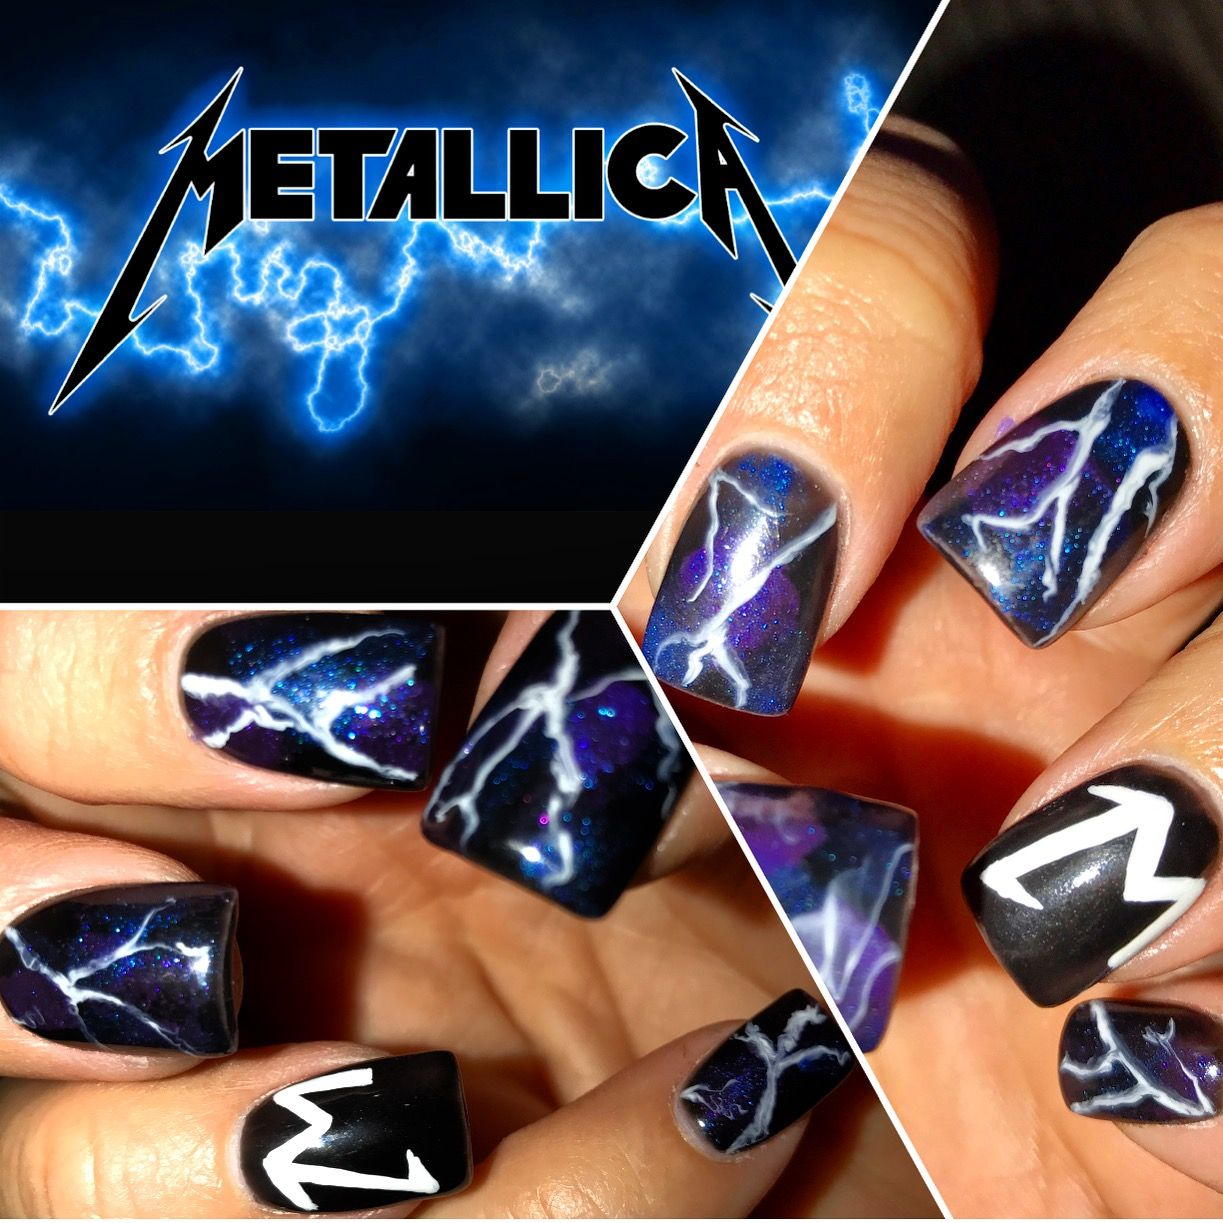 Metallica Nail Art Designs By Renee Nails